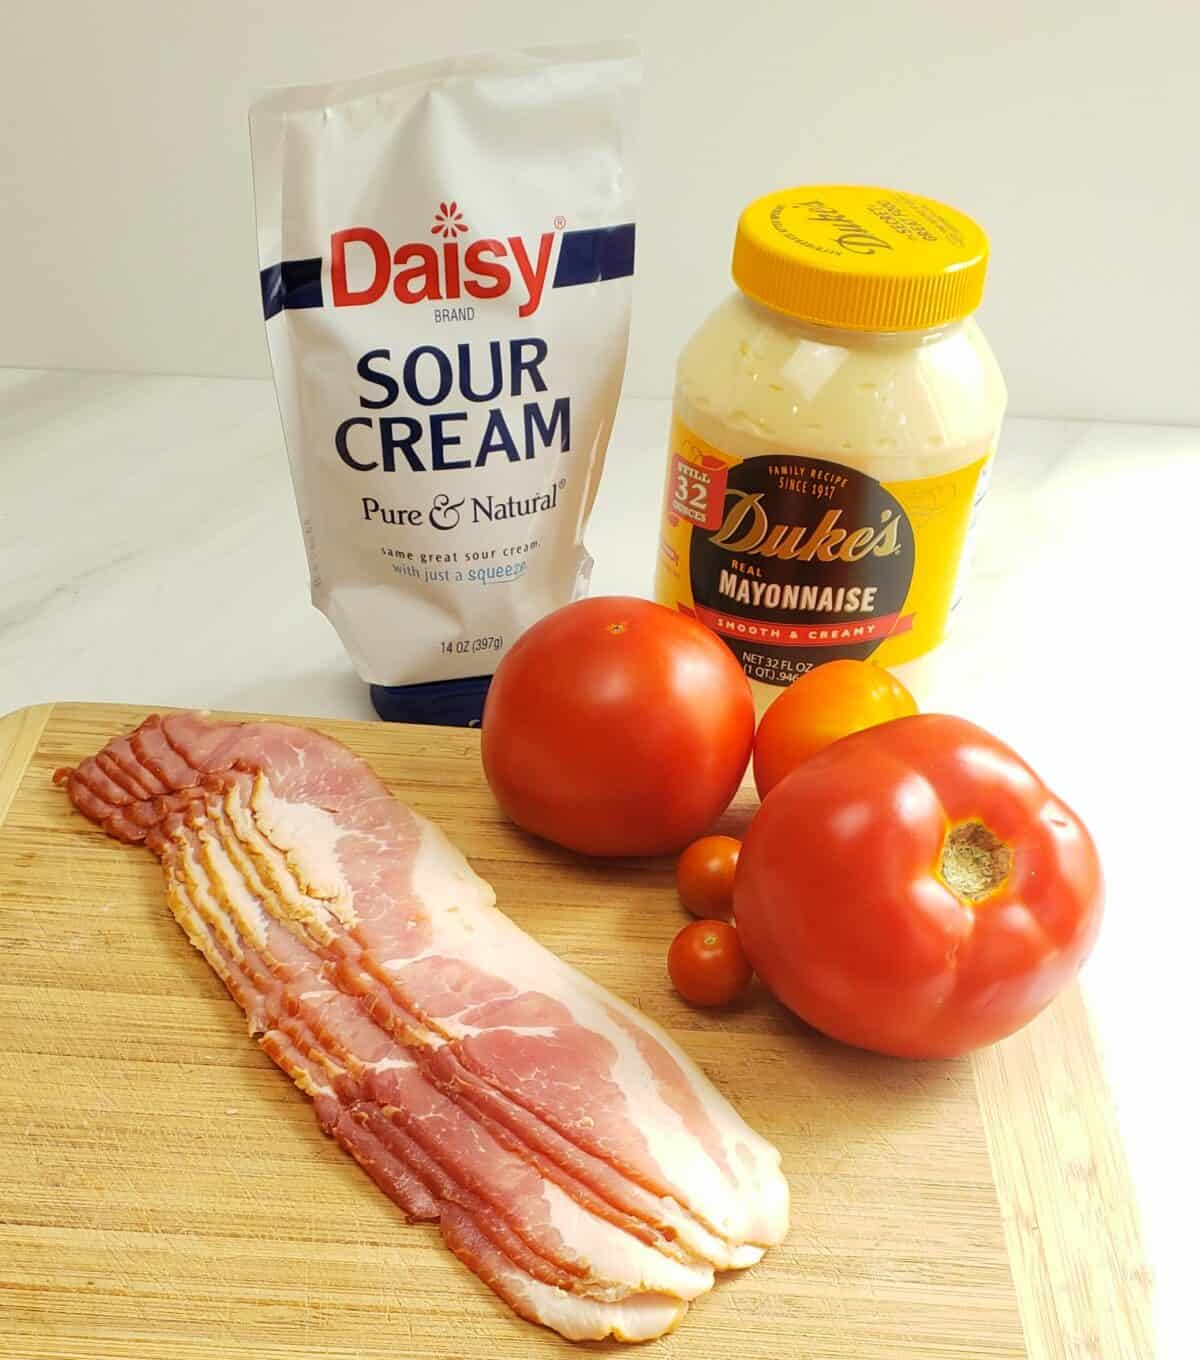 Ingredients on a wooden cutting board: sour cream, Dukes mayonnaise, uncooked bacon, tomatoes